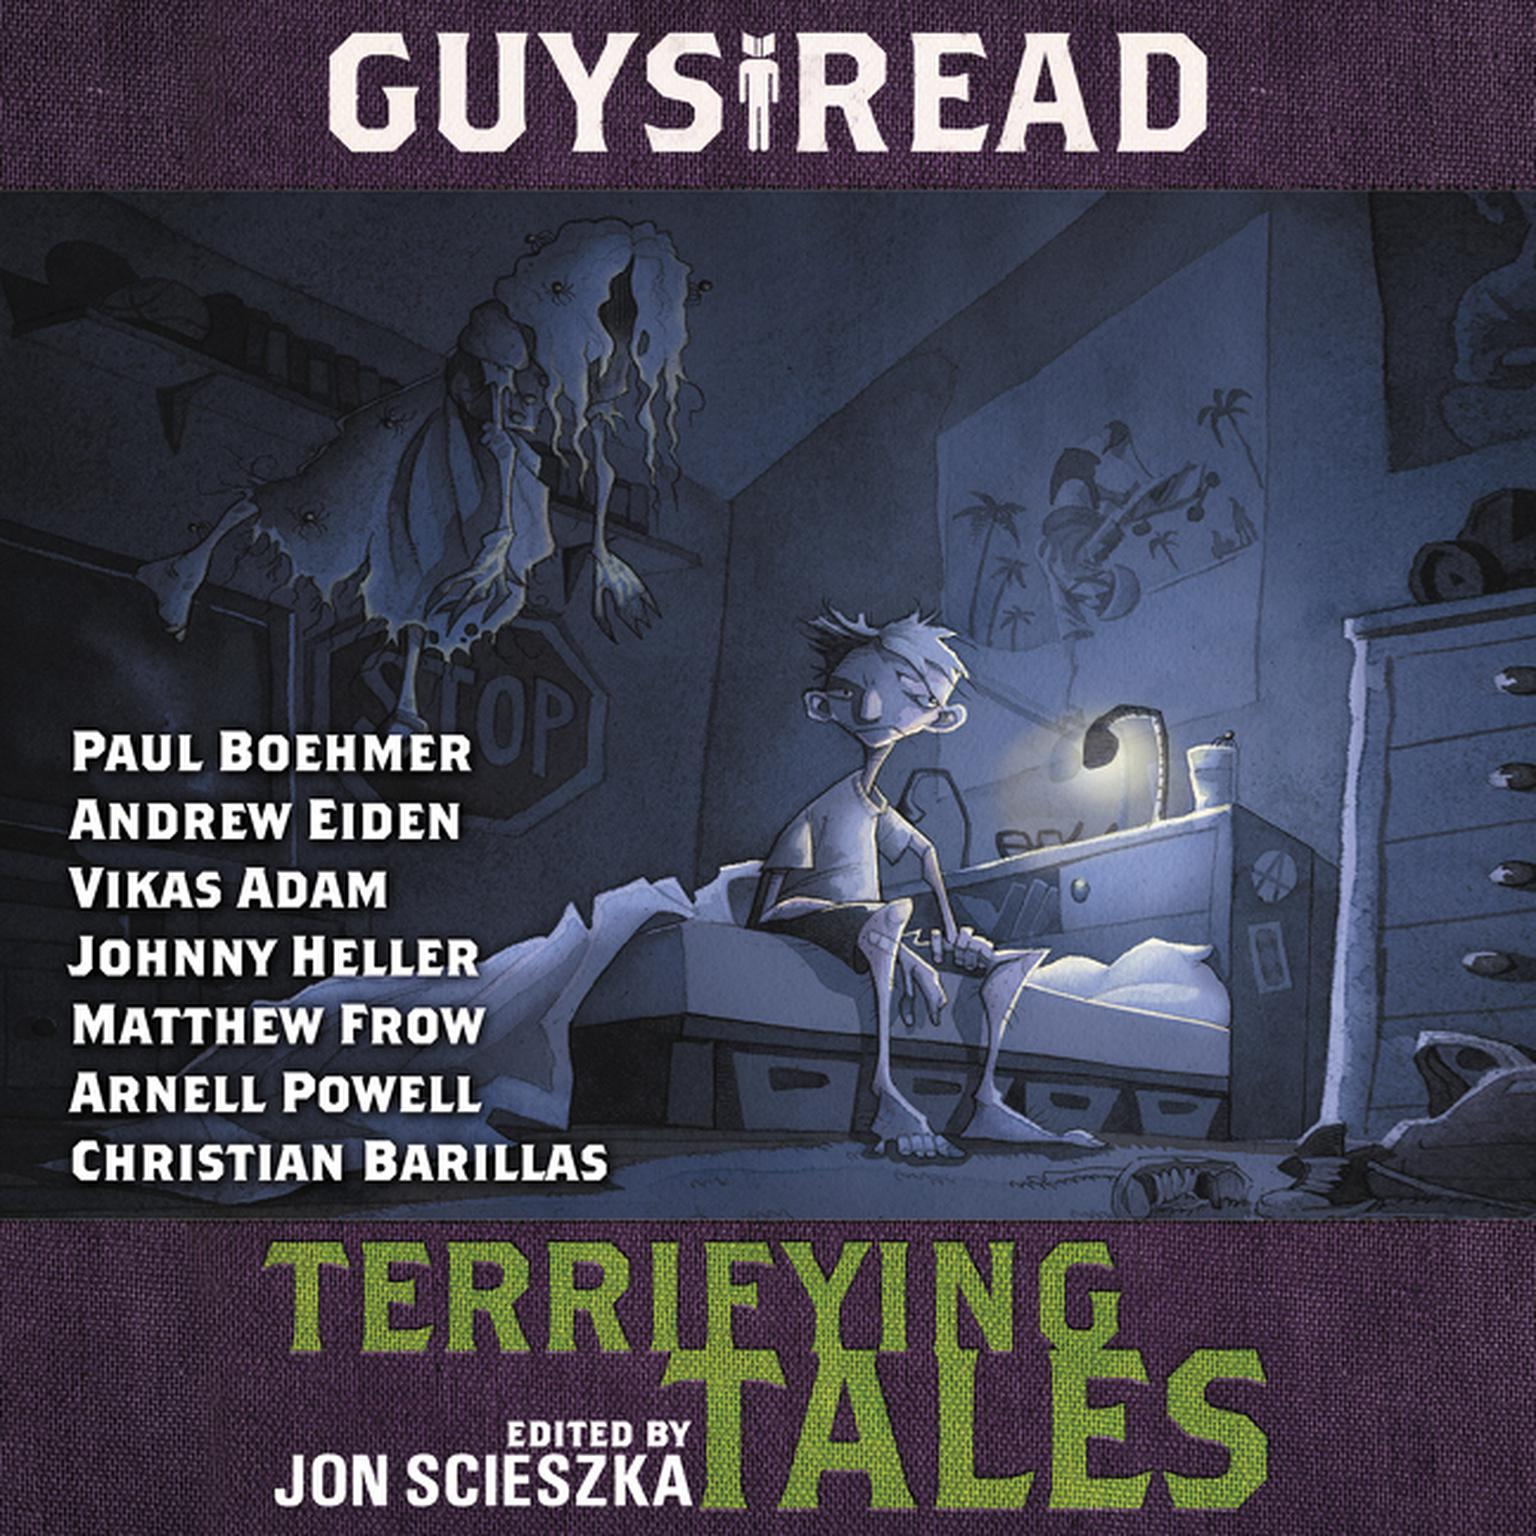 Printable Guys Read: Terrifying Tales Audiobook Cover Art